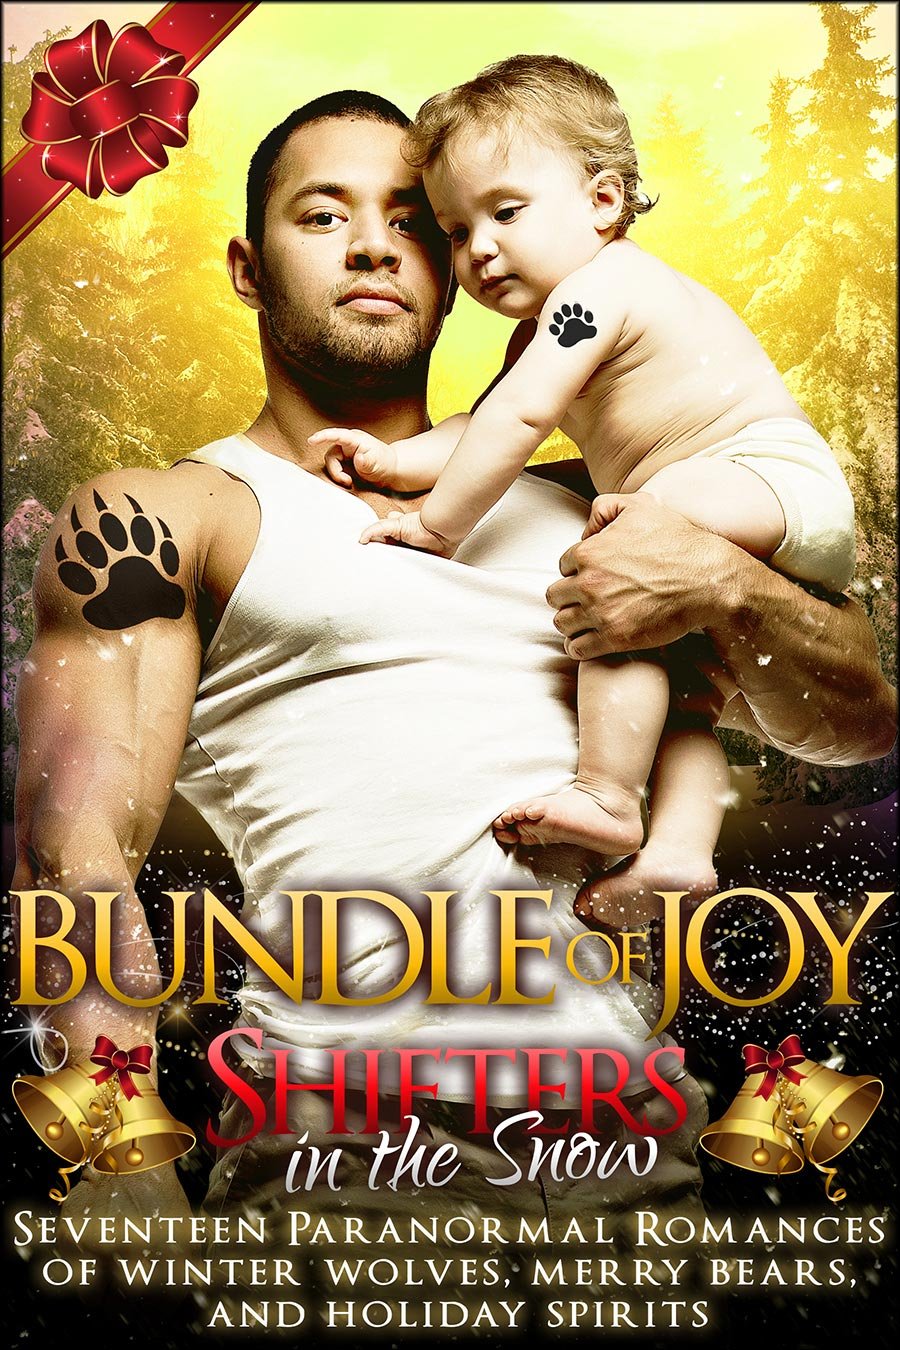 Shifters-in-the-Snow-2---Bundle-of-Joy-cover---6-x-9.jpg